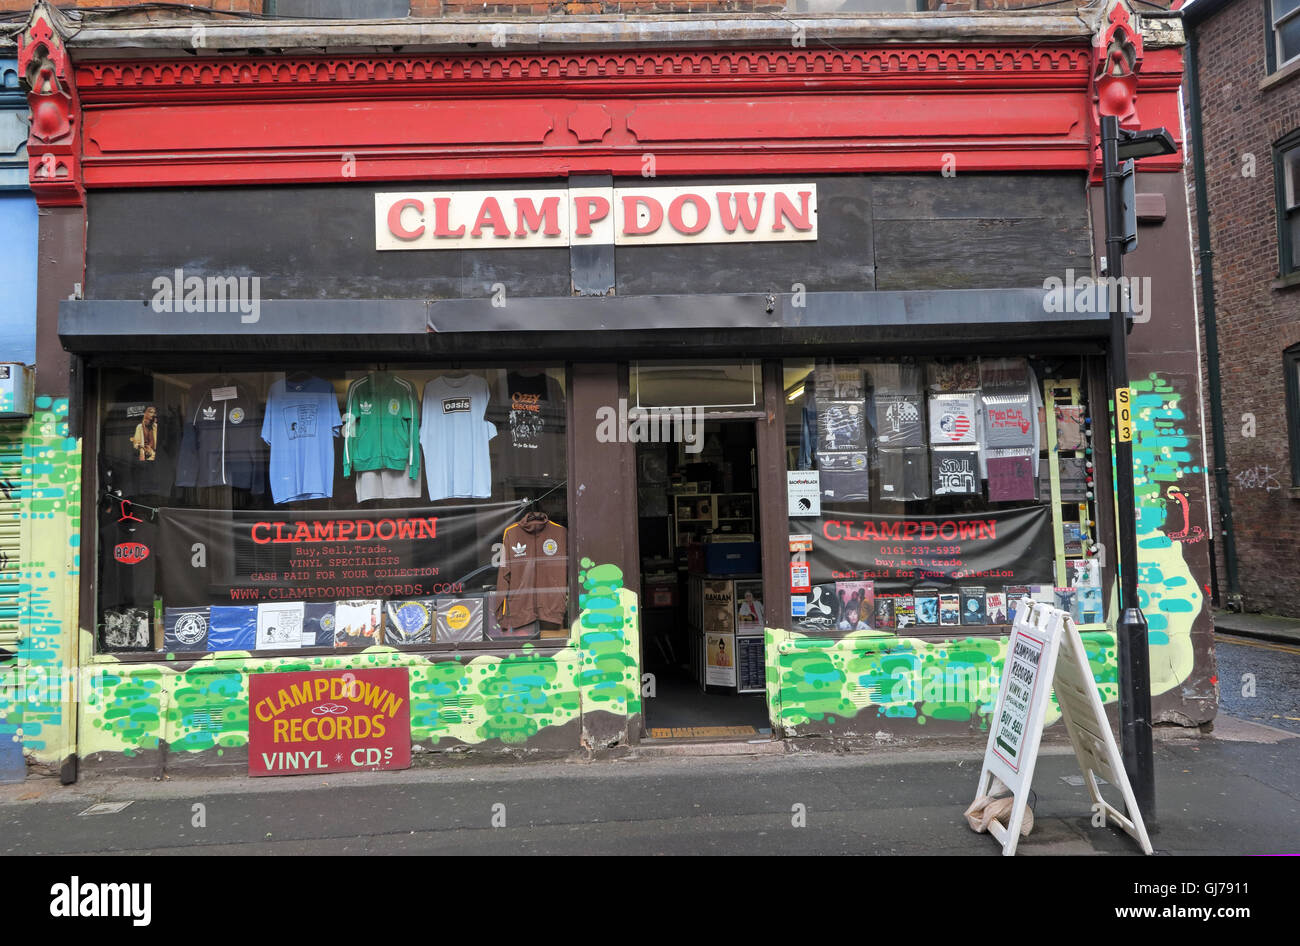 Clampdown Records, Northern Quarter Artwork, NQ, Manchester, North West England, UK, M1 1JR - Stock Image